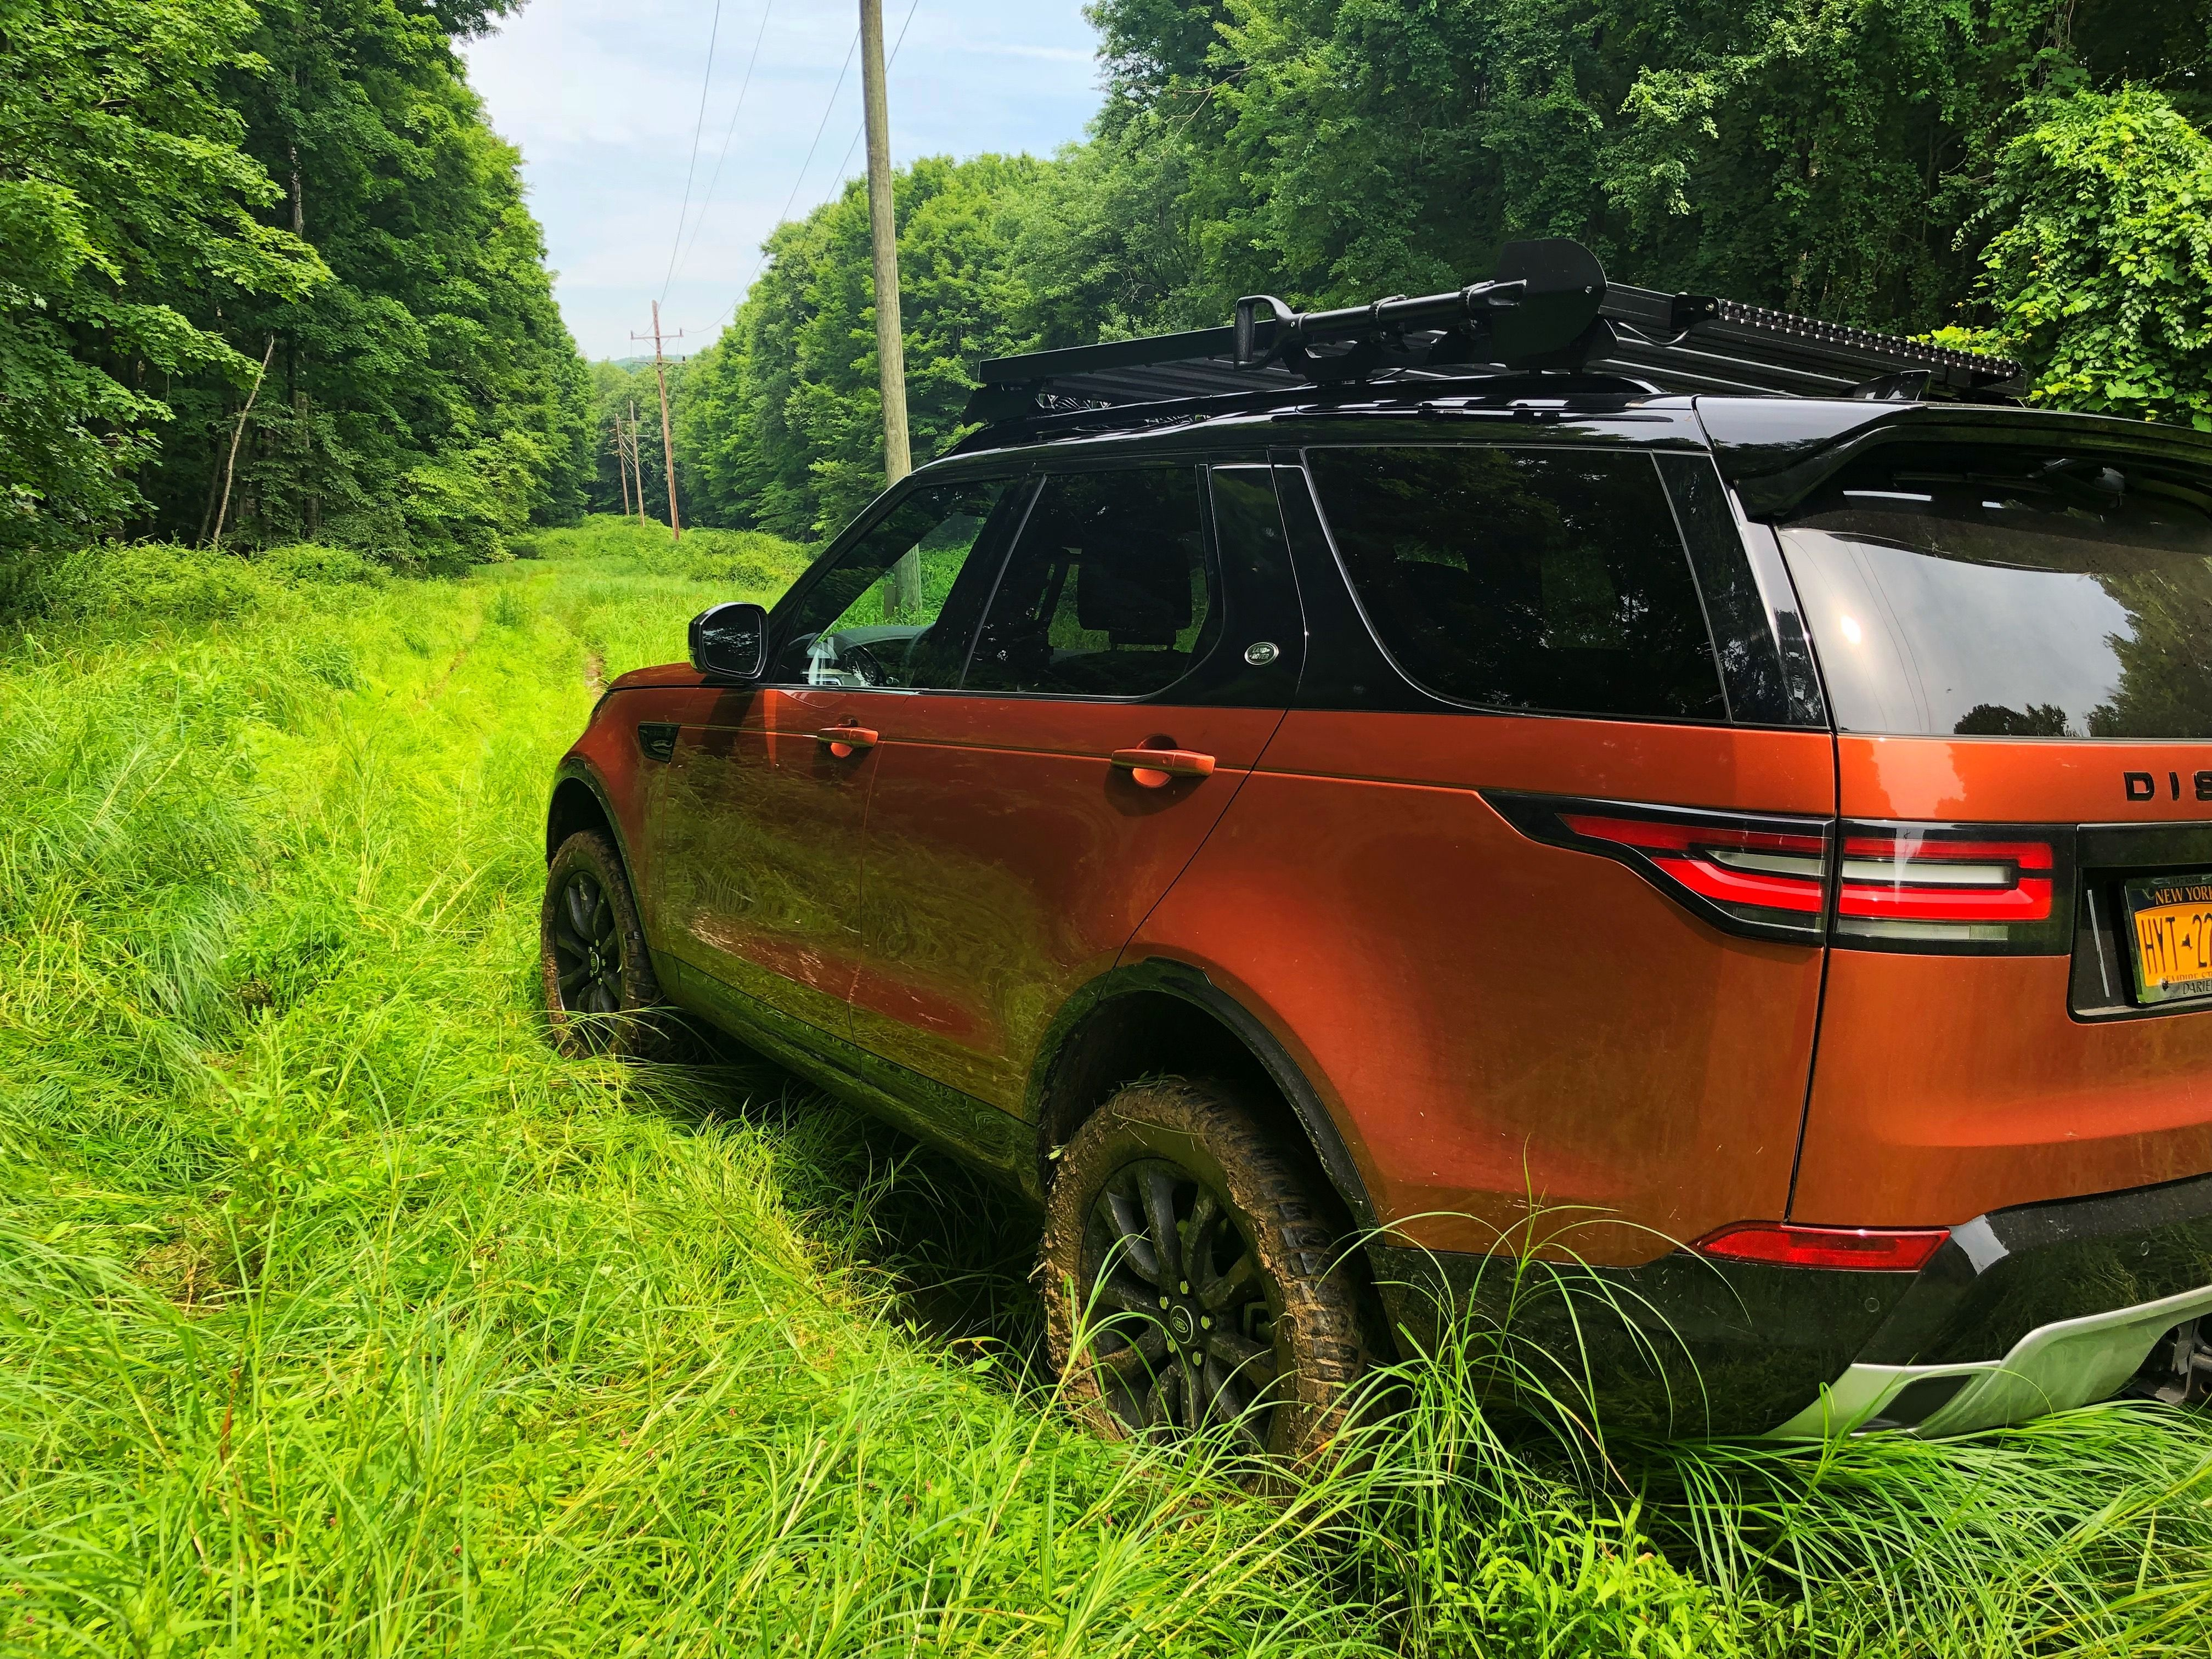 Pin By Michael Pollock On Land Rover Discovery 5 Land Rover Discovery 5 Land Rover Discovery 5